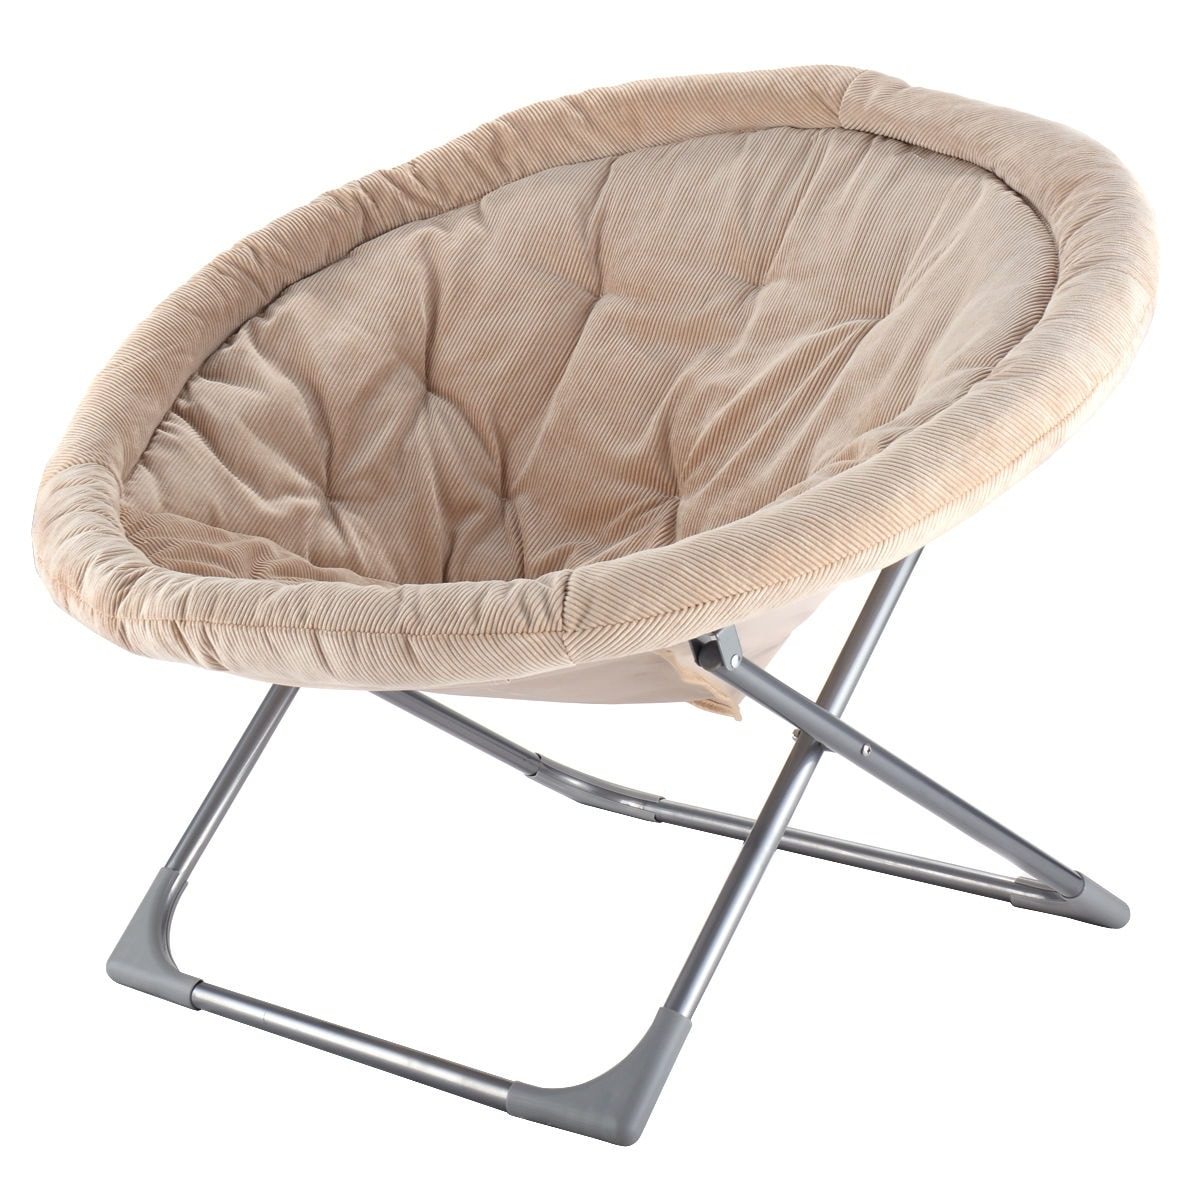 Costway Oversized Large Folding Saucer Moon Chair Corduroy Round ...